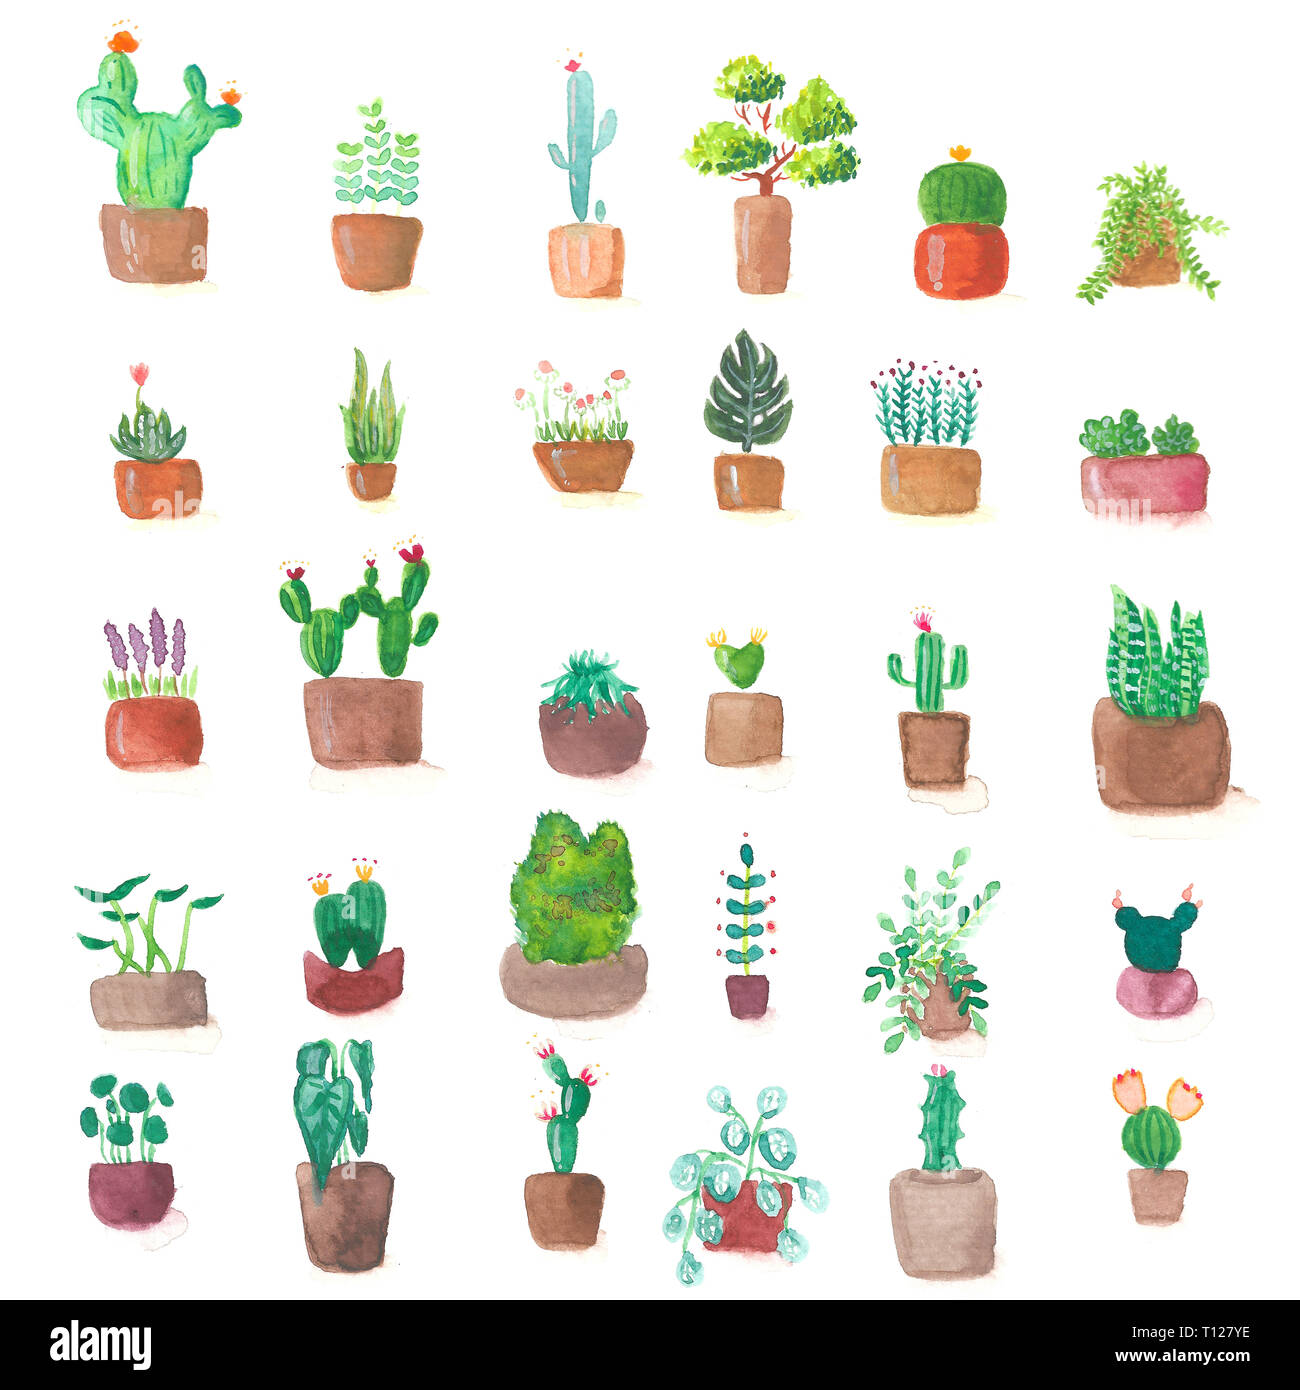 Small Cute Green Cactus Plant Pot Set Watercolor Paint Illustration Art Stock Photo Alamy